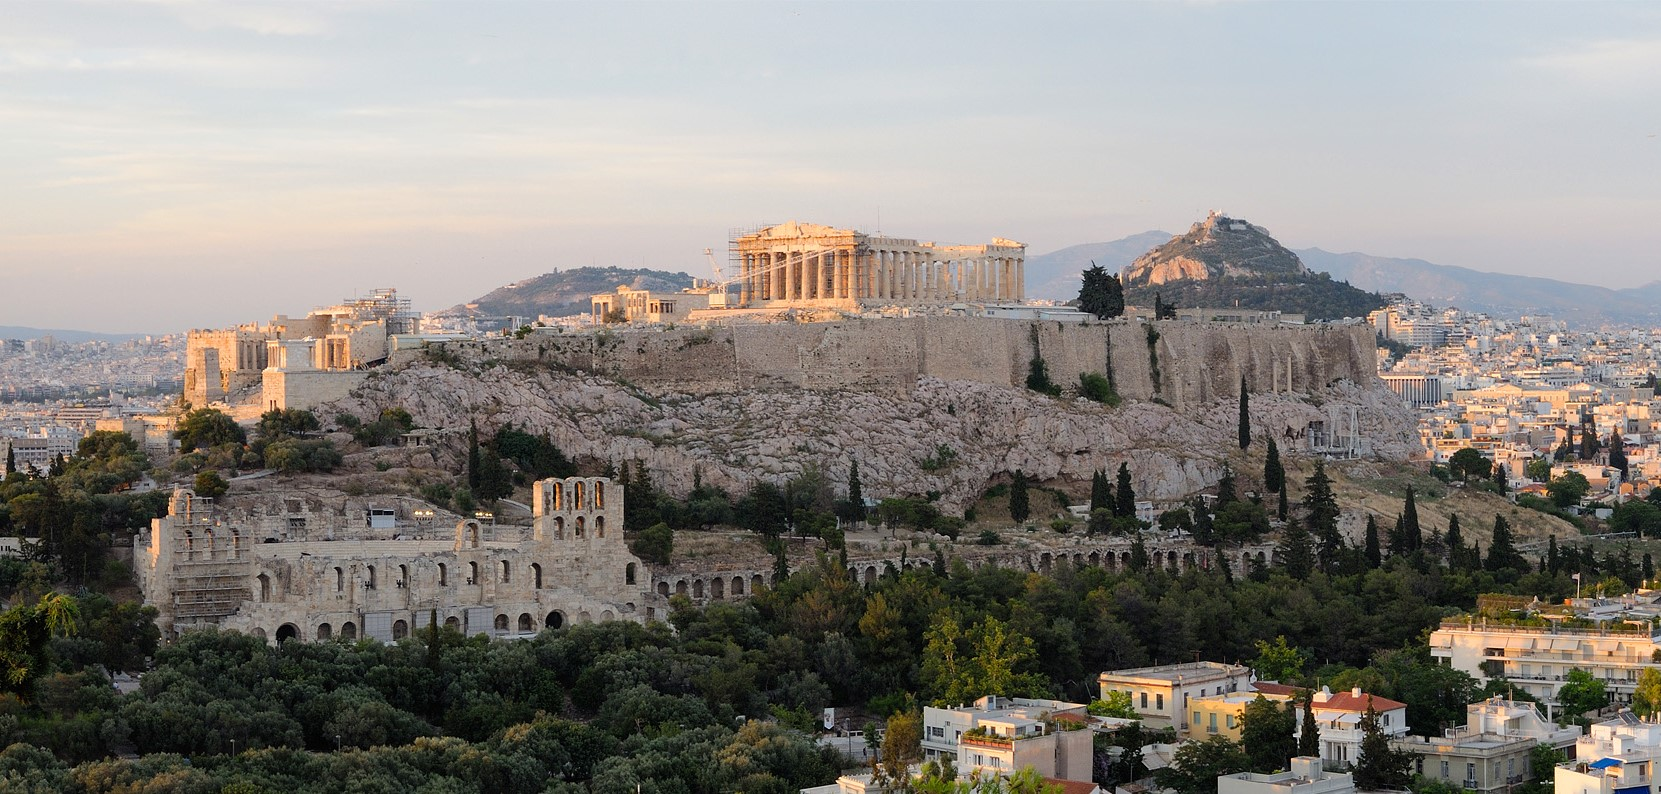 2017 Feast of Tabernacles Site in Greece Announced | United Church of God